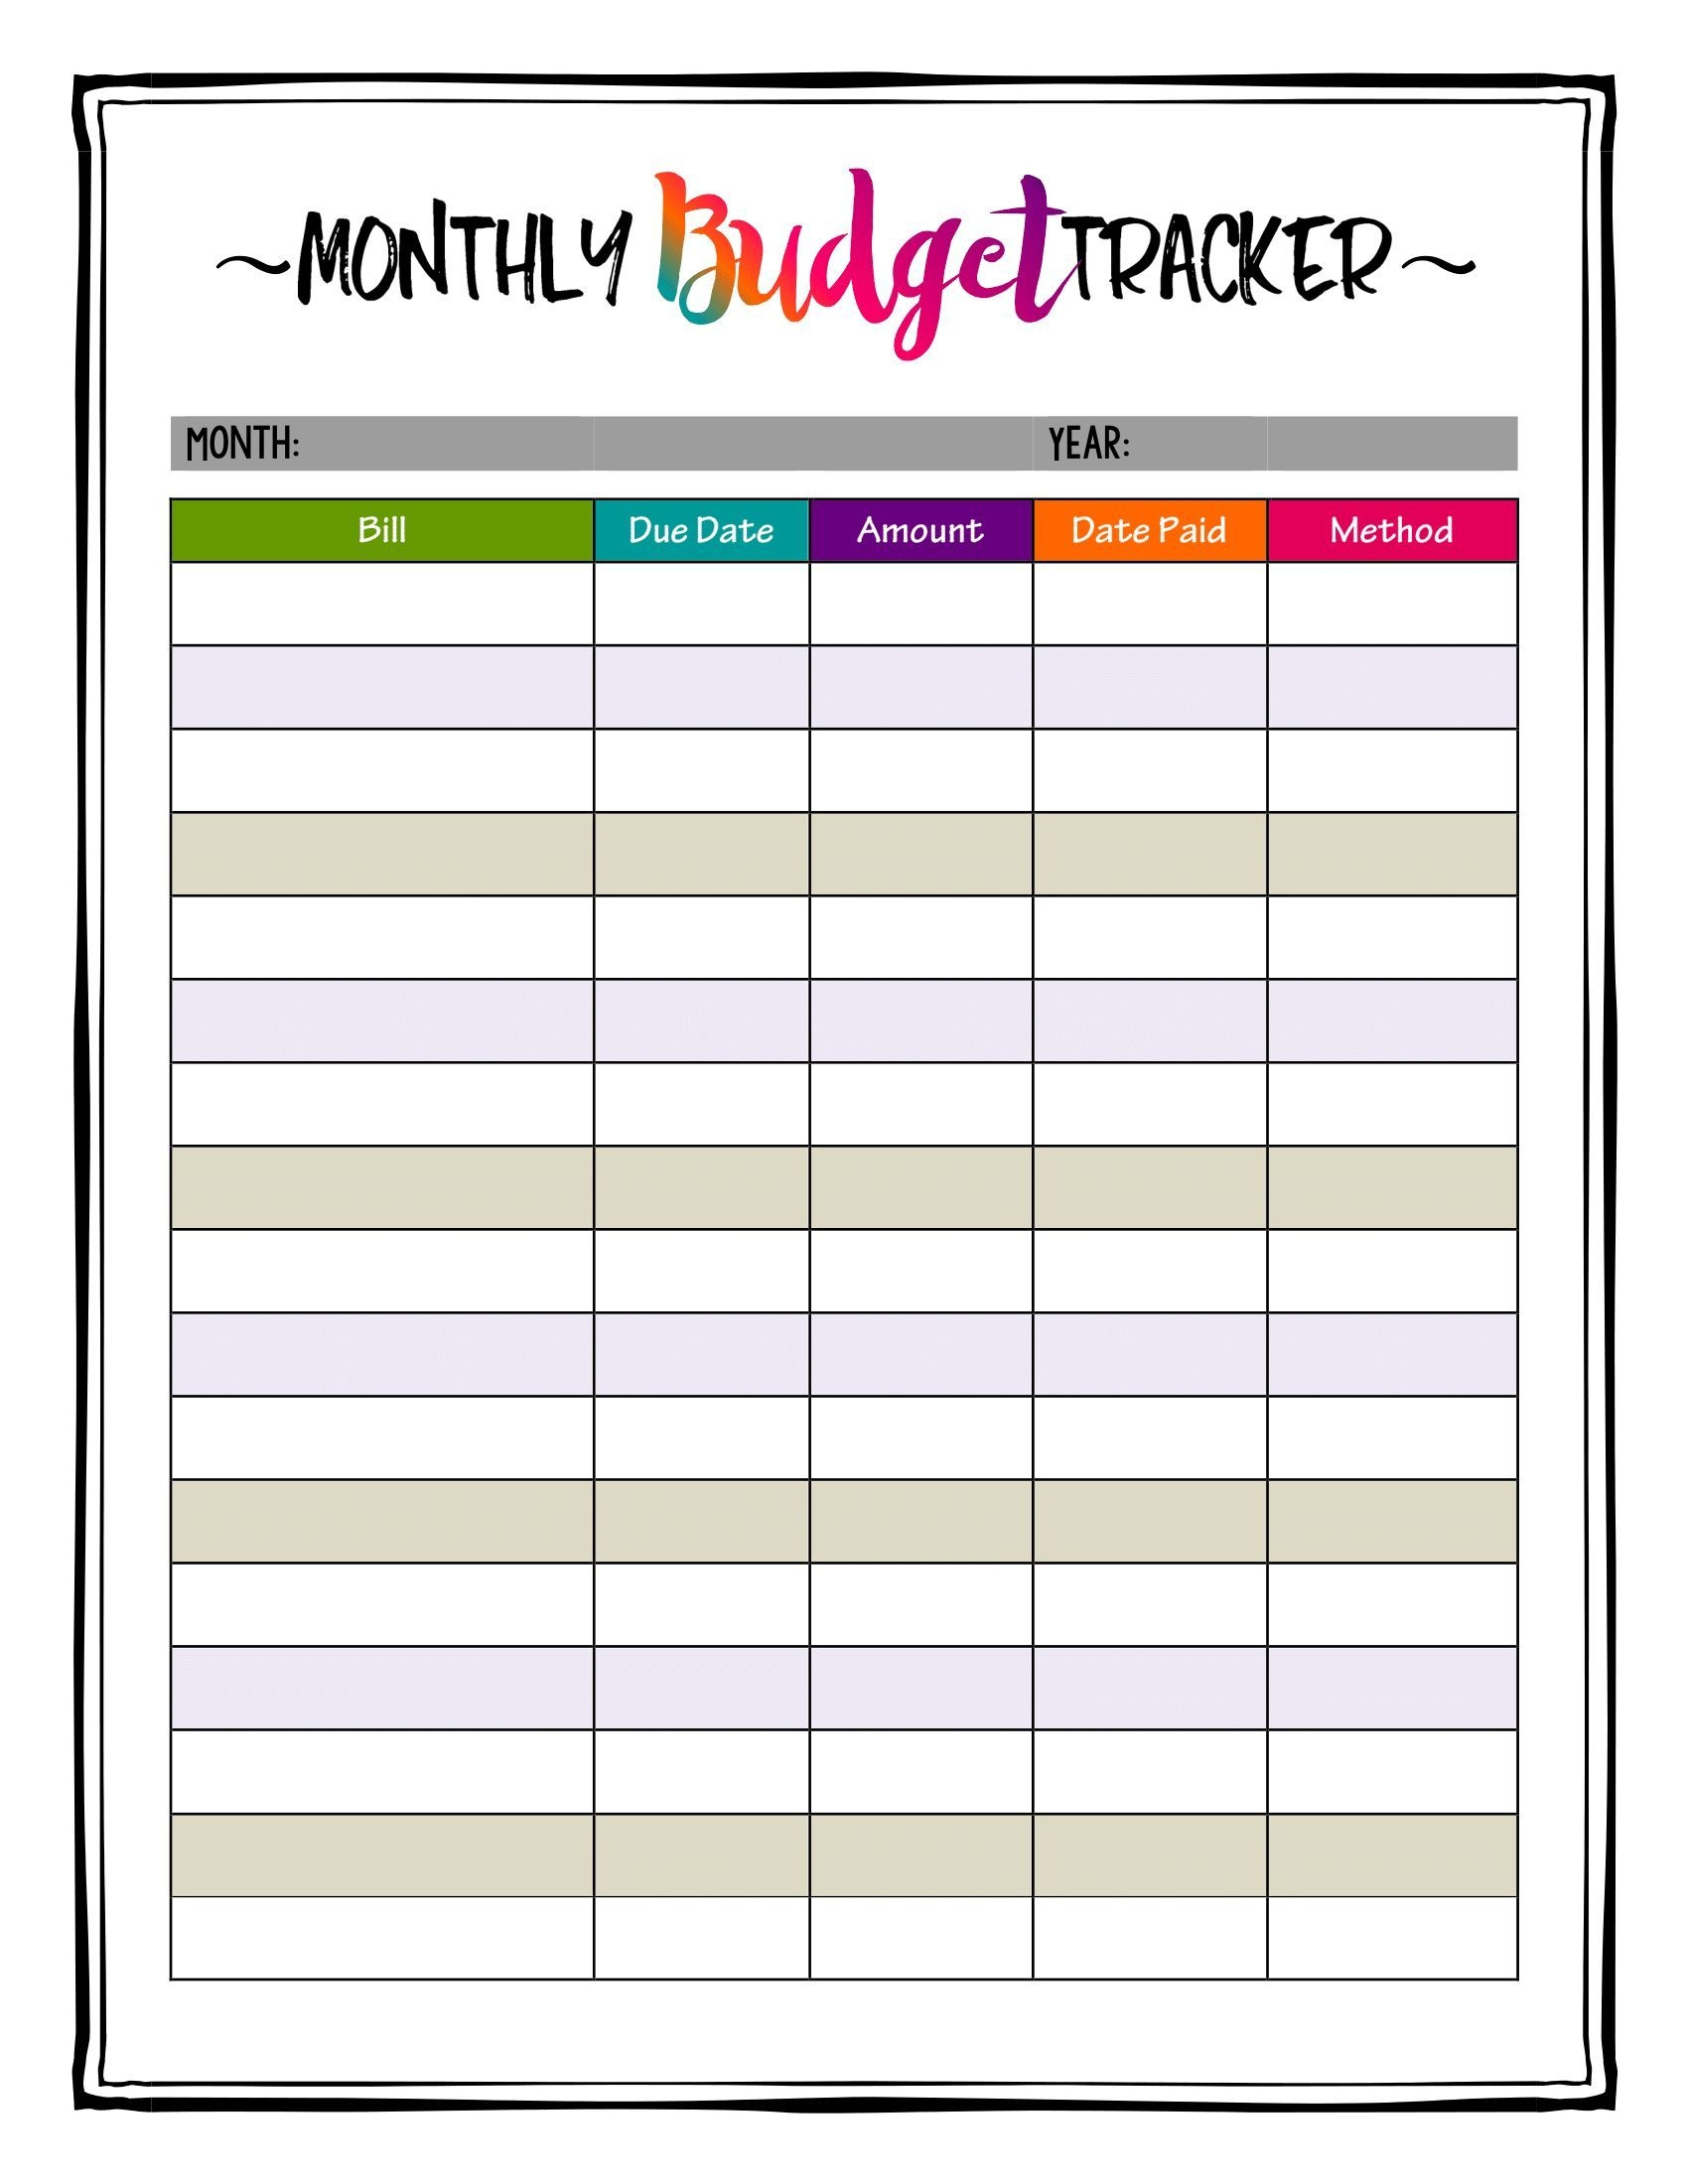 How To Organize Bills! Super Bright Budget Tracker Makes